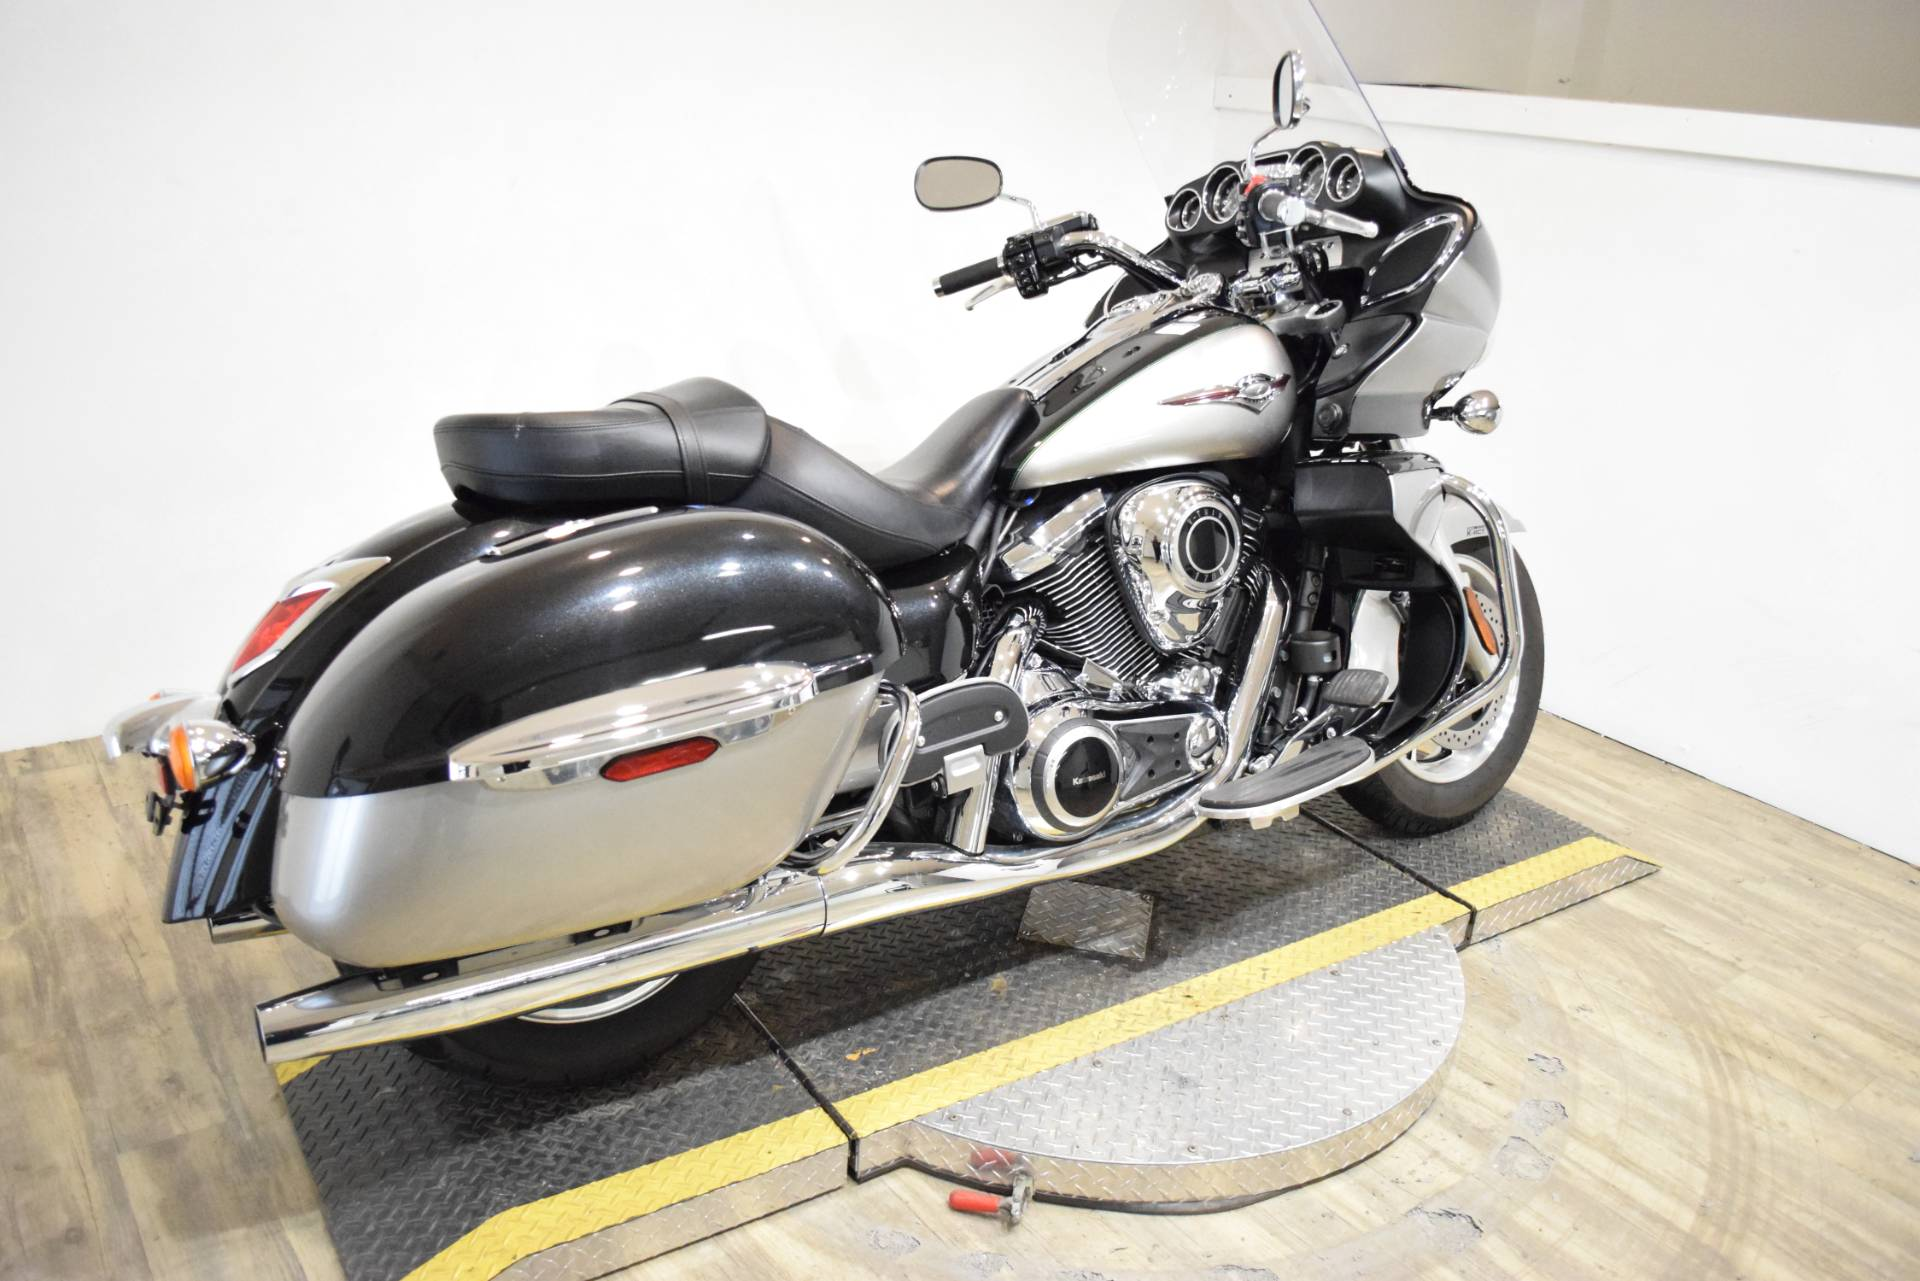 2016 Kawasaki Vulcan 1700 Voyager ABS in Wauconda, Illinois - Photo 9